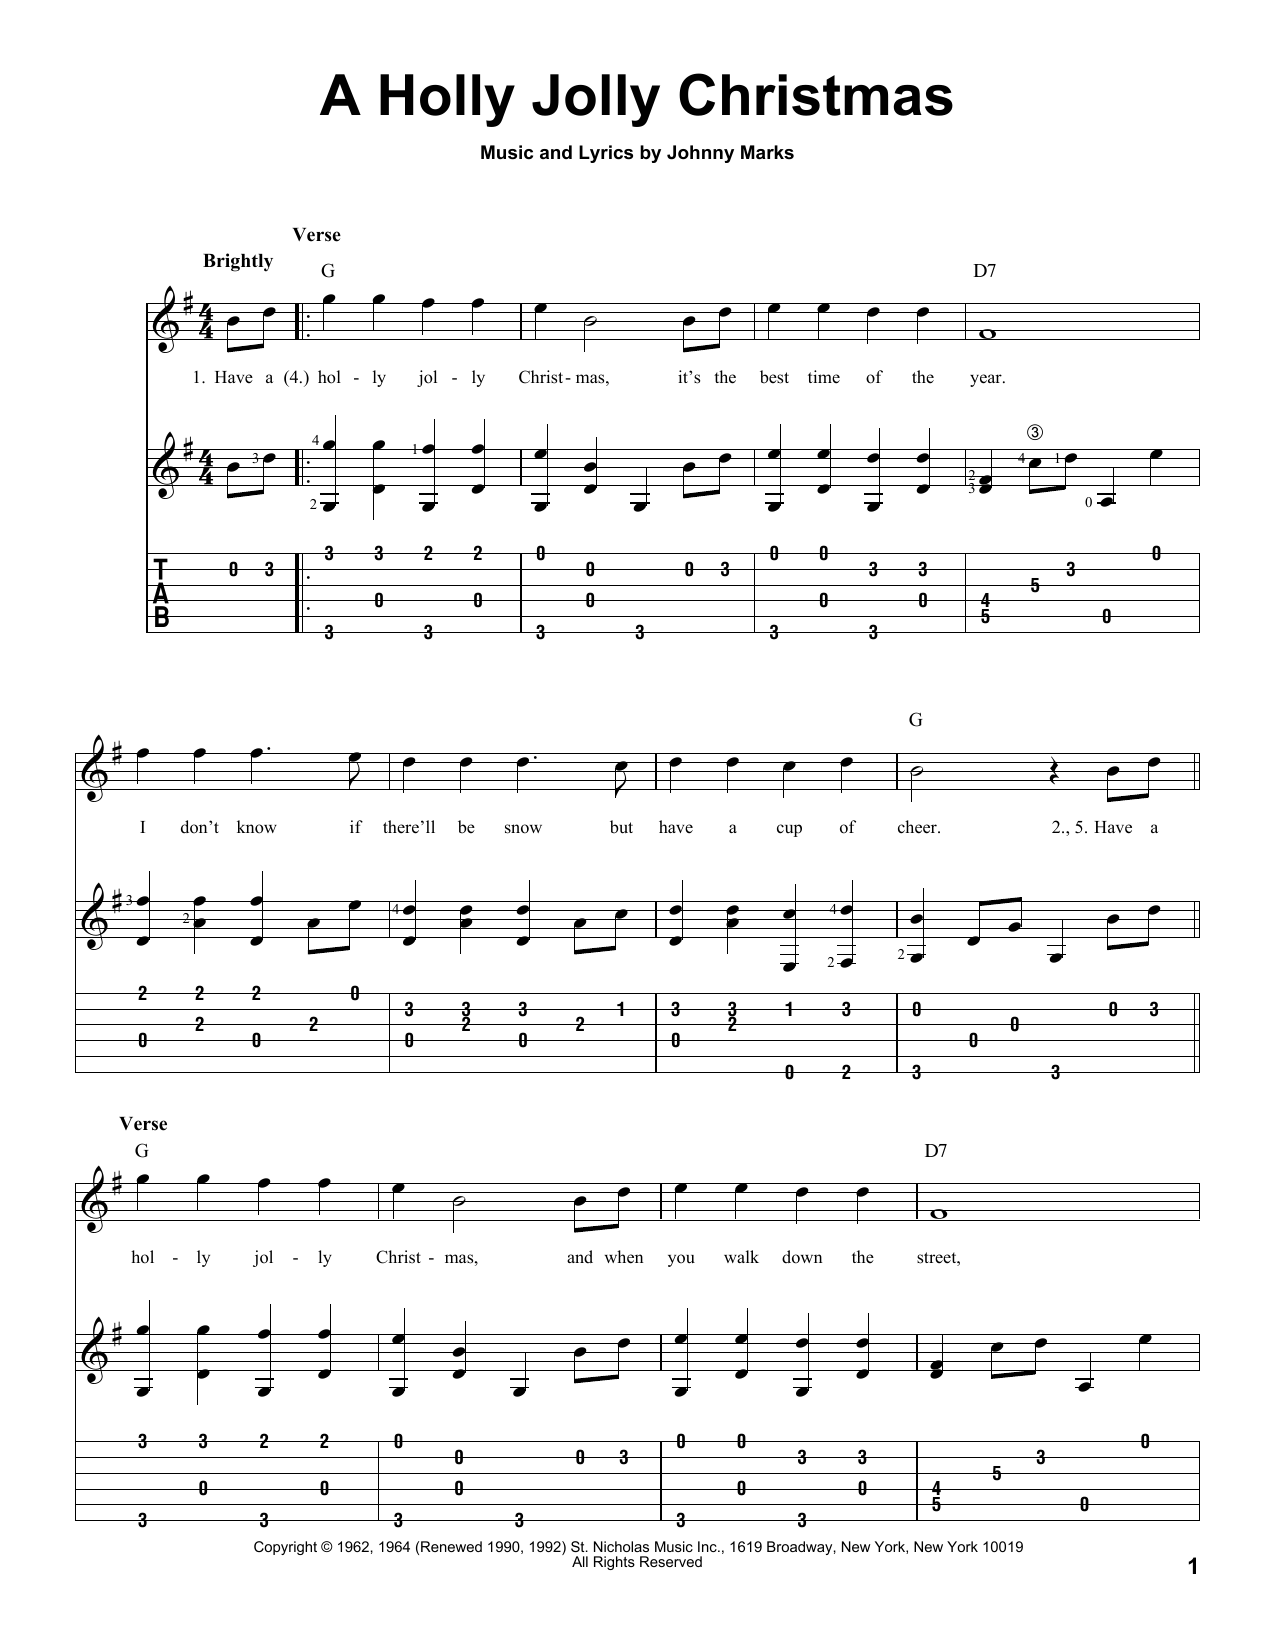 A Holly Jolly Christmas Guitar Tab by Johnny Marks (Guitar Tab – 83194)